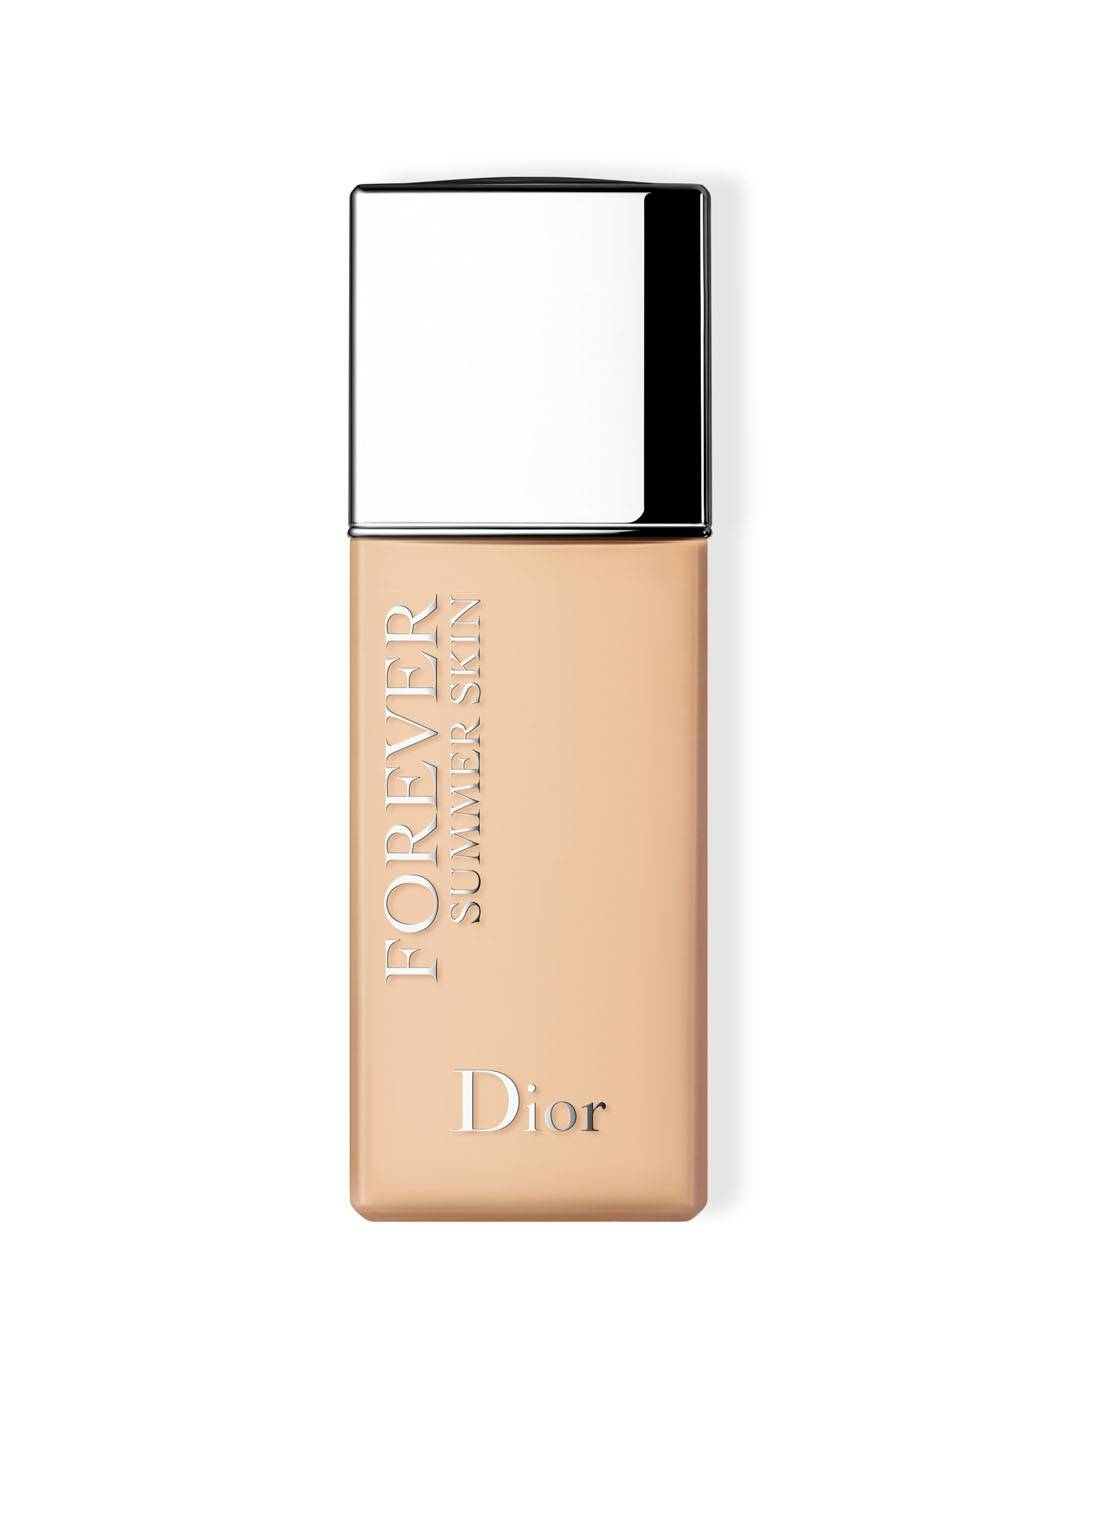 dior Dior Forever Summer Skin - Fond de teint Color Games Collection Limited Edition - 001